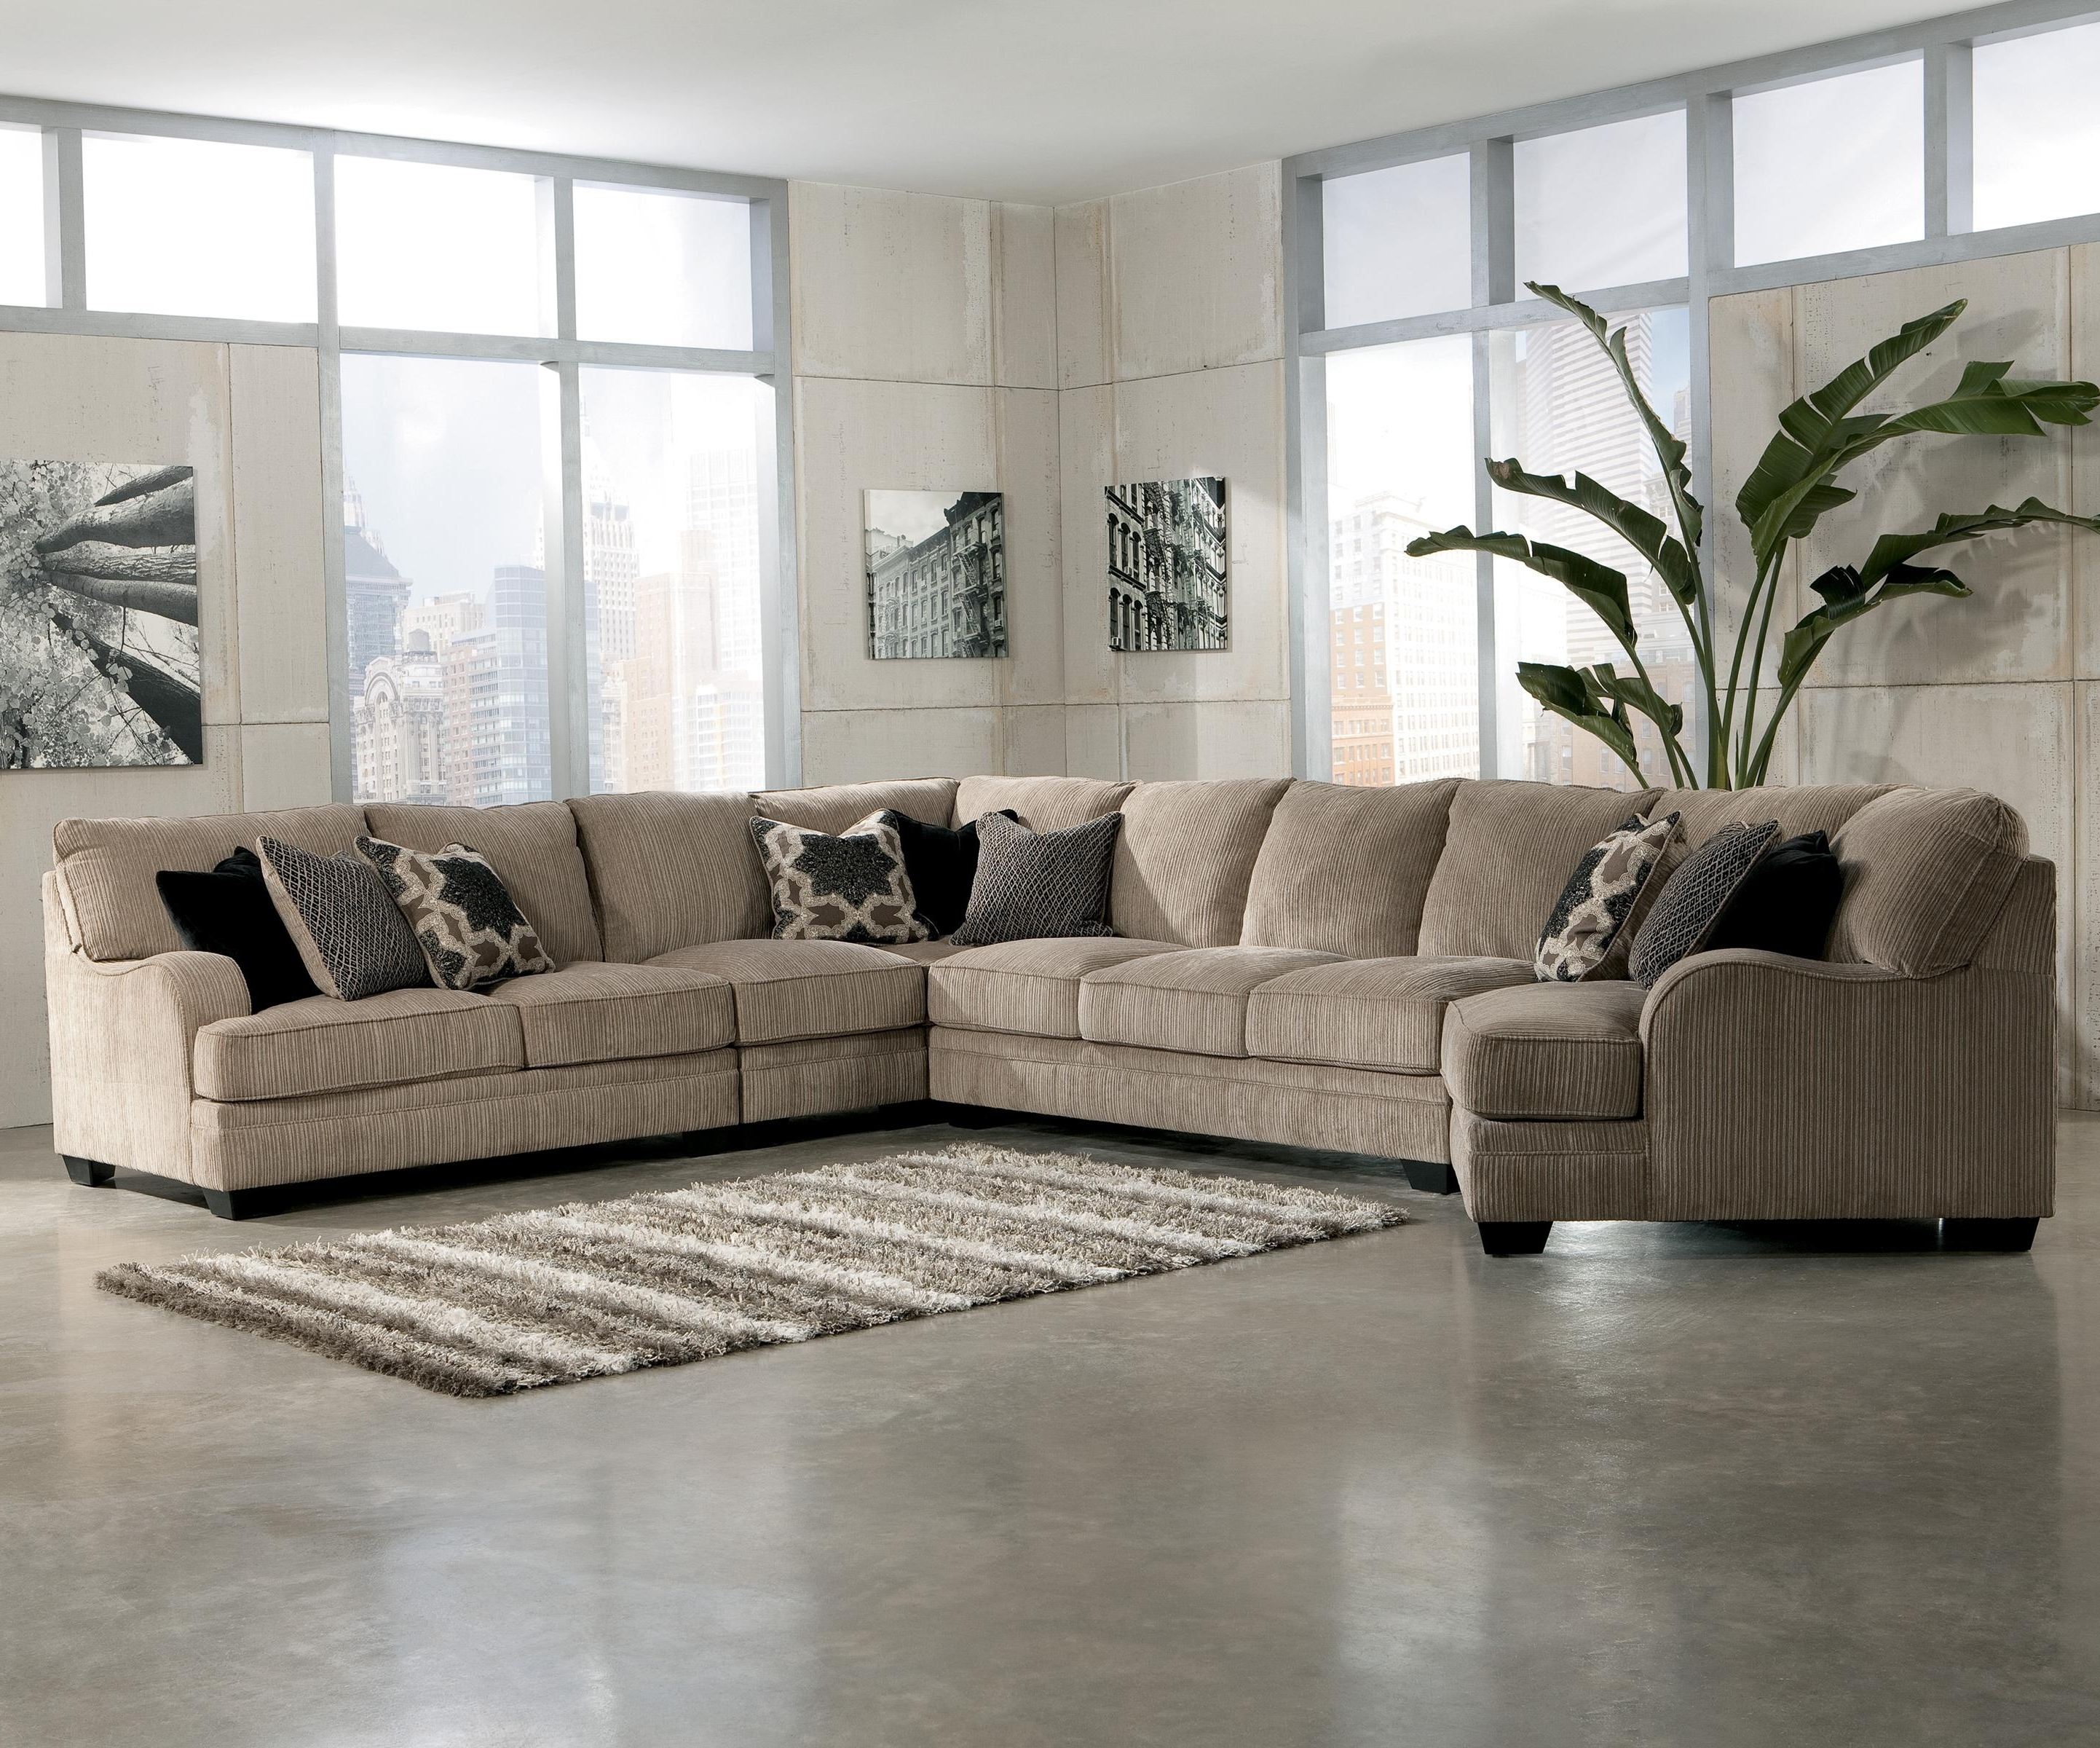 Well Known Knoxville Tn Sectional Sofas Pertaining To Nifty Sectional Sofas Knoxville Tn 15 On Fabulous Inspirational (View 16 of 20)